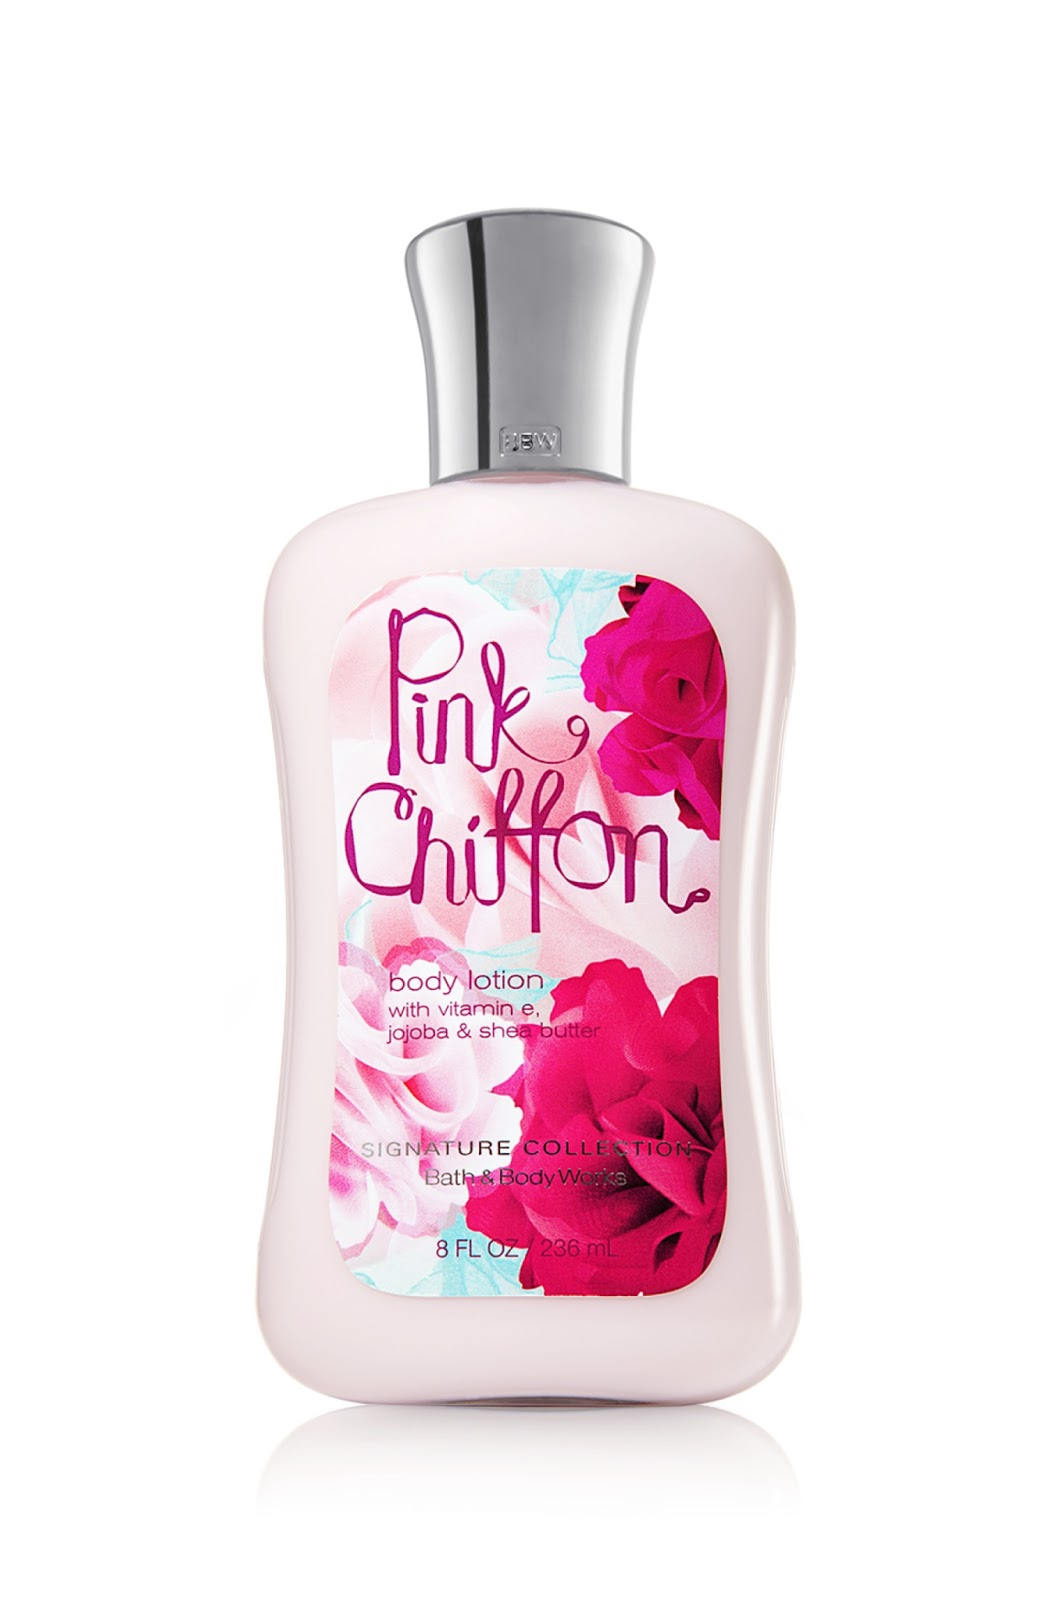 Beauty redefined bath body works pink chiffon lotion review for Bathroom body works